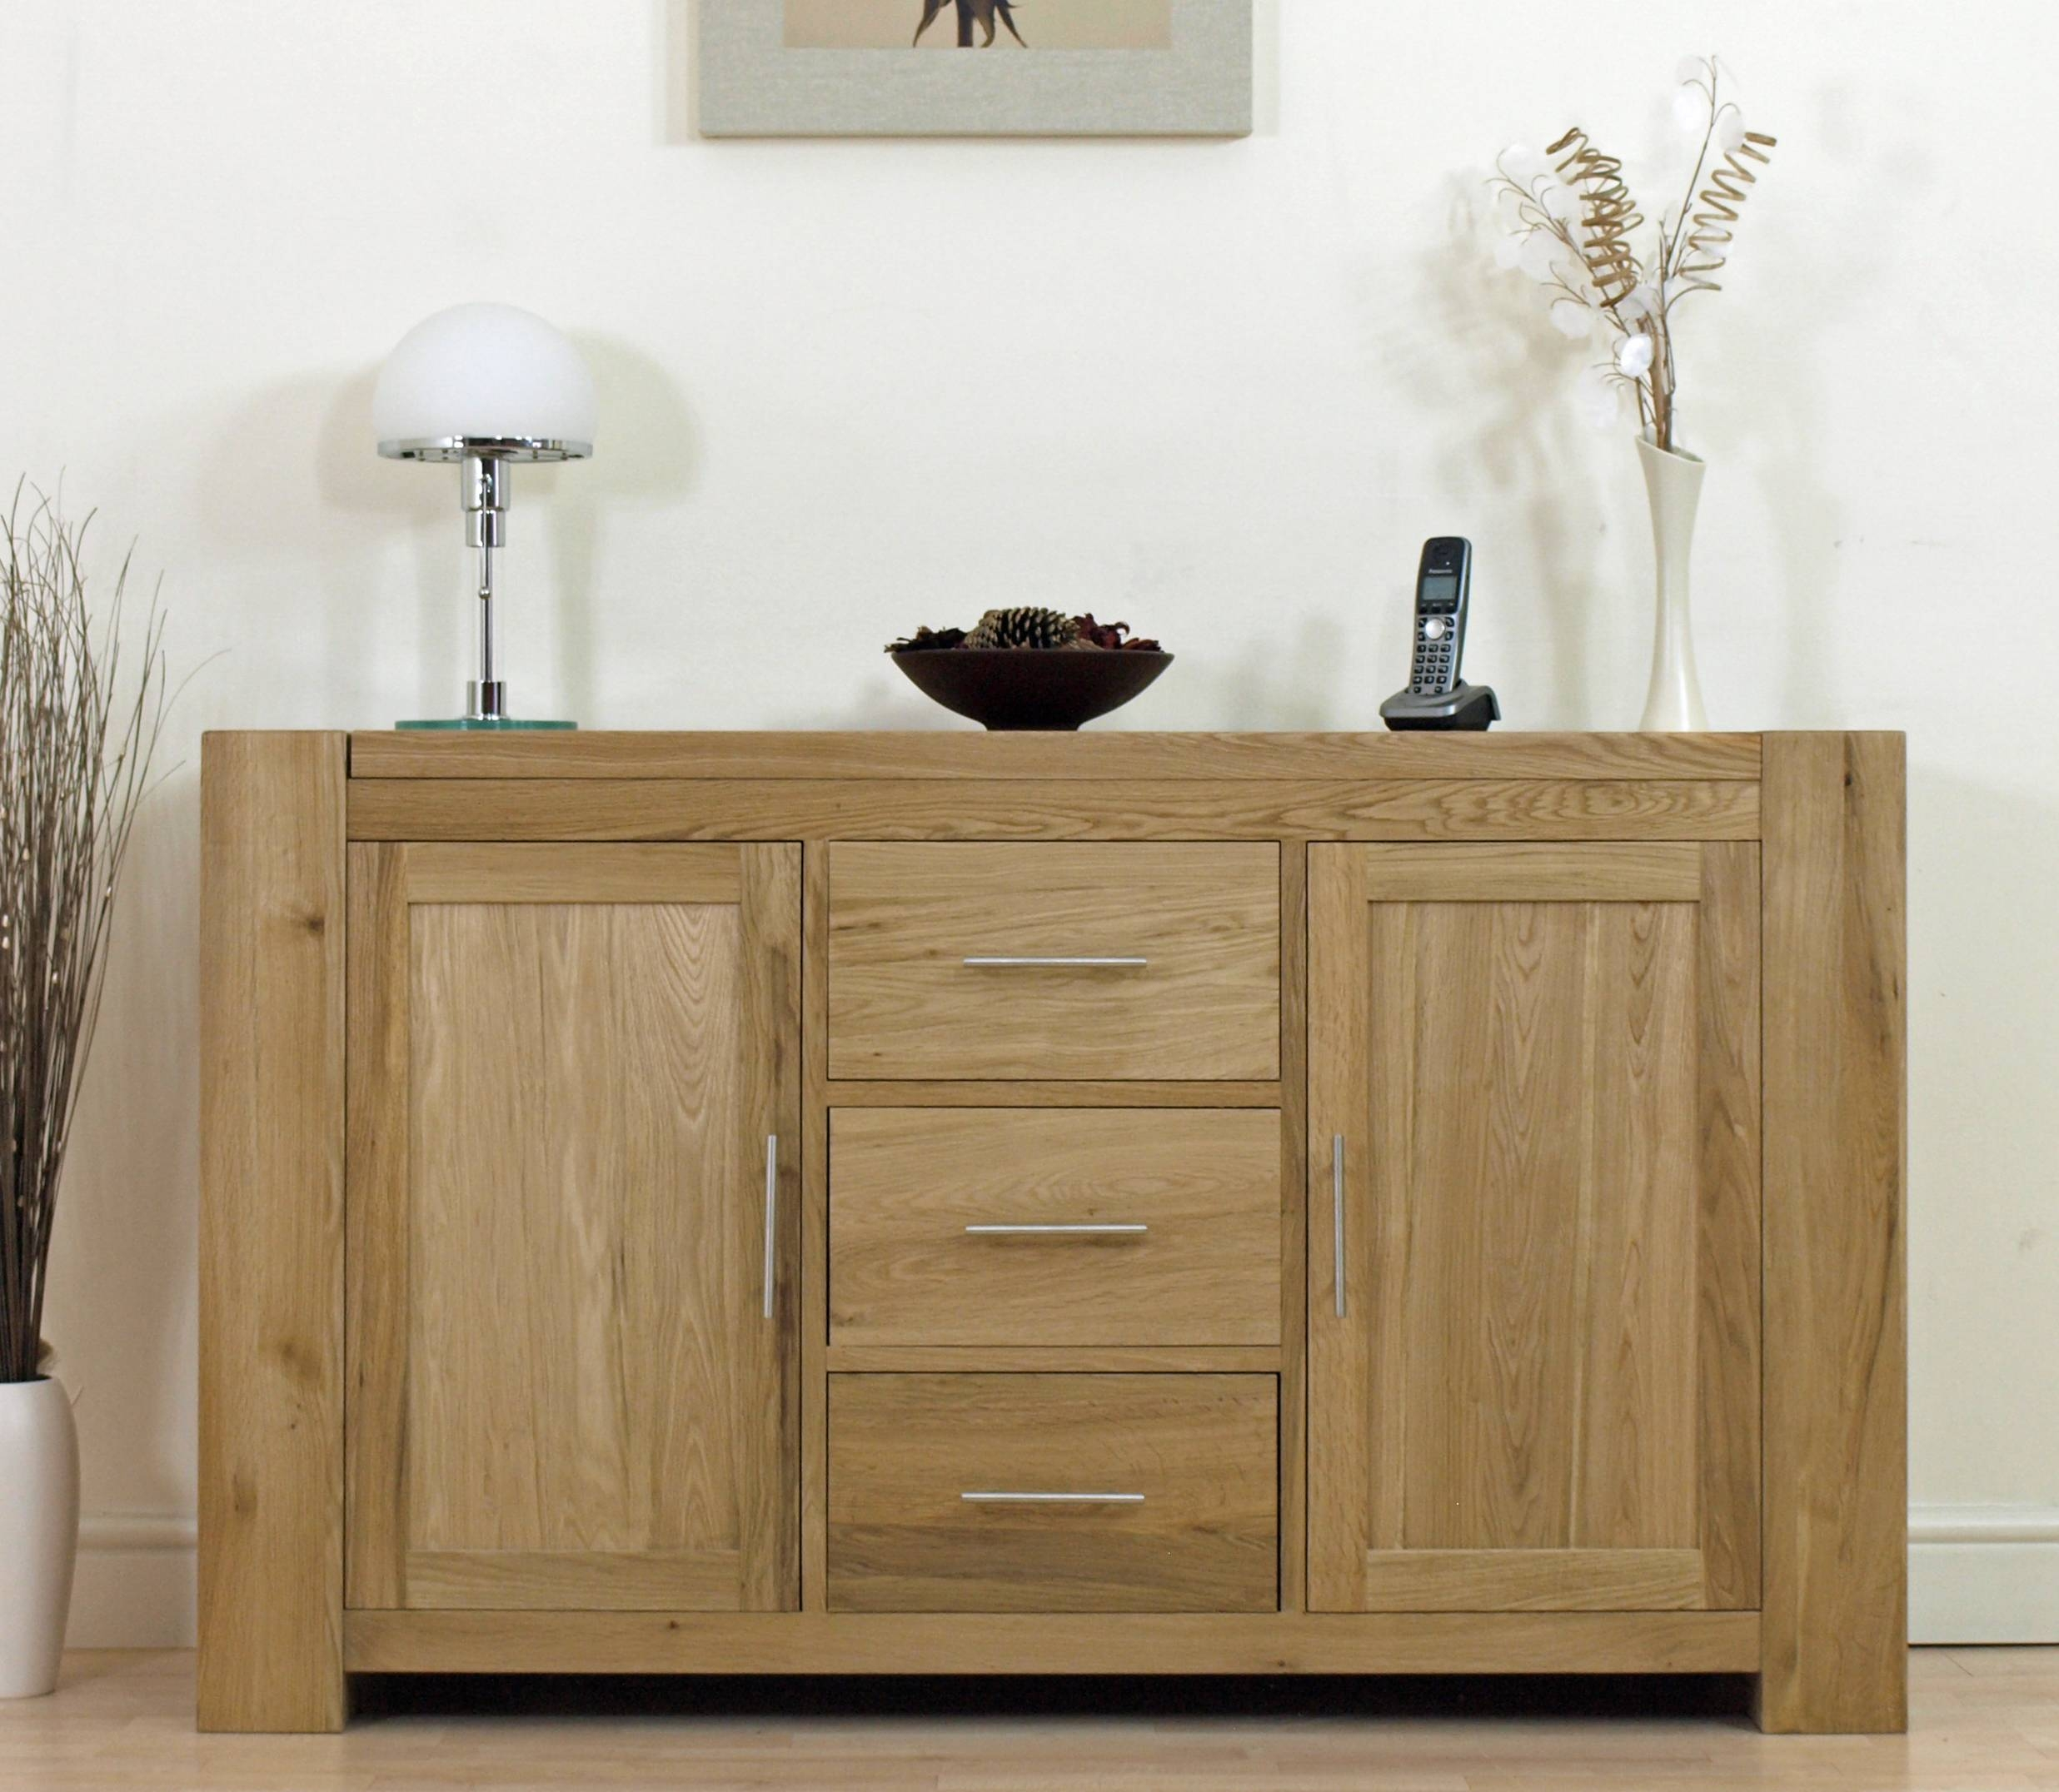 Solid Oak Sideboard Is Your First Choice Living Room Furniture - Hgnv pertaining to Sideboards for Living Room (Image 27 of 30)